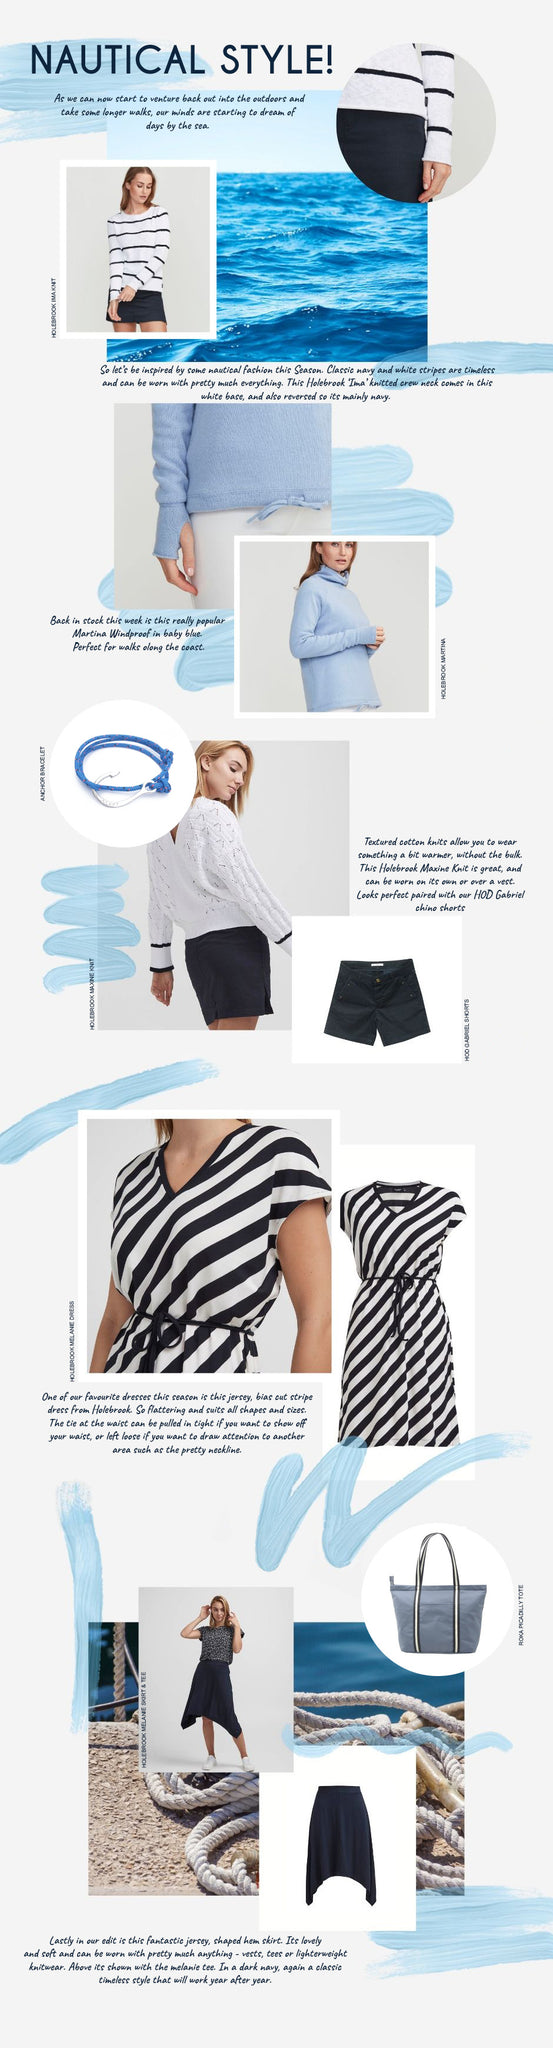 Our best of Nautical Style, breton stripes and cool crisp cottons